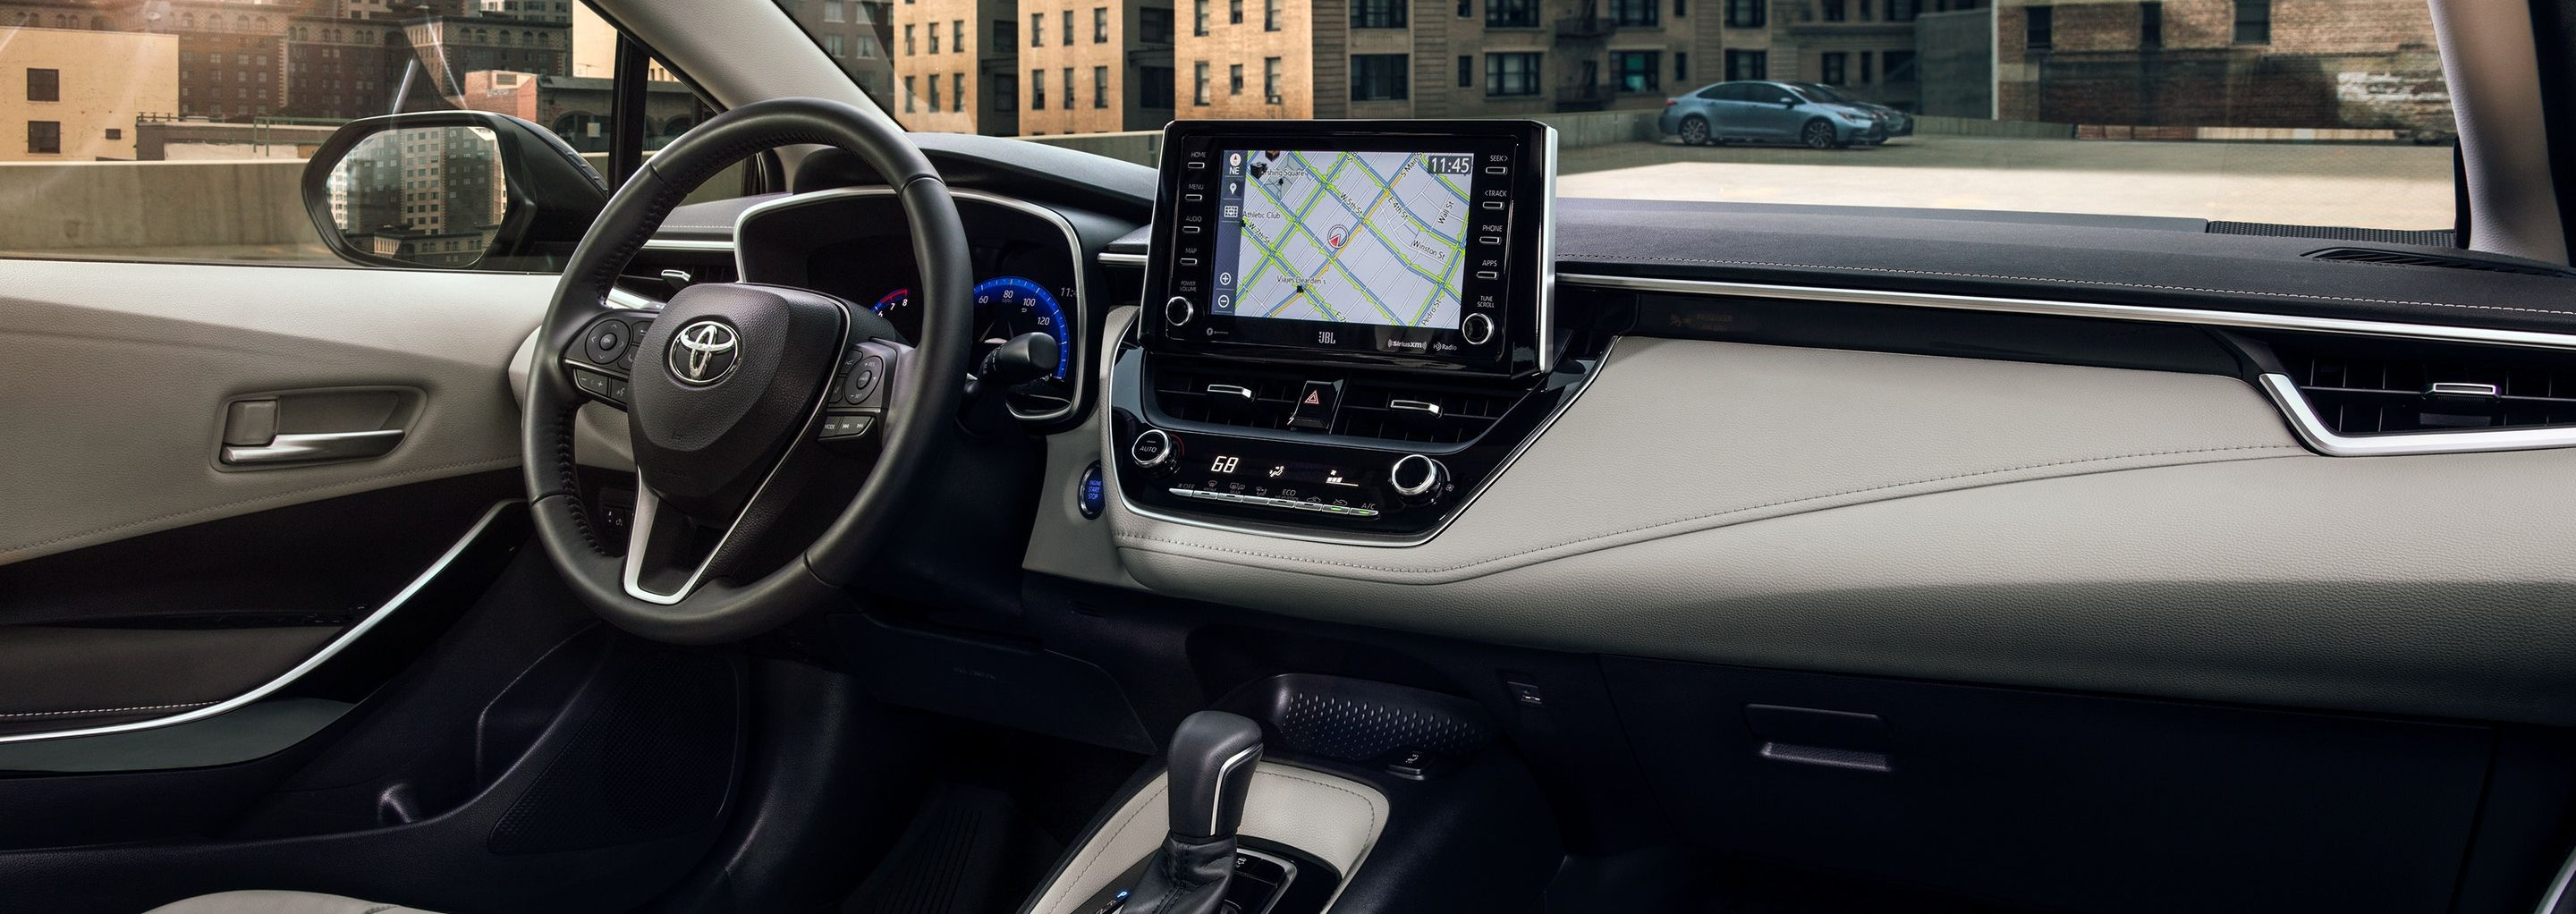 2019 Corolla Dashboard